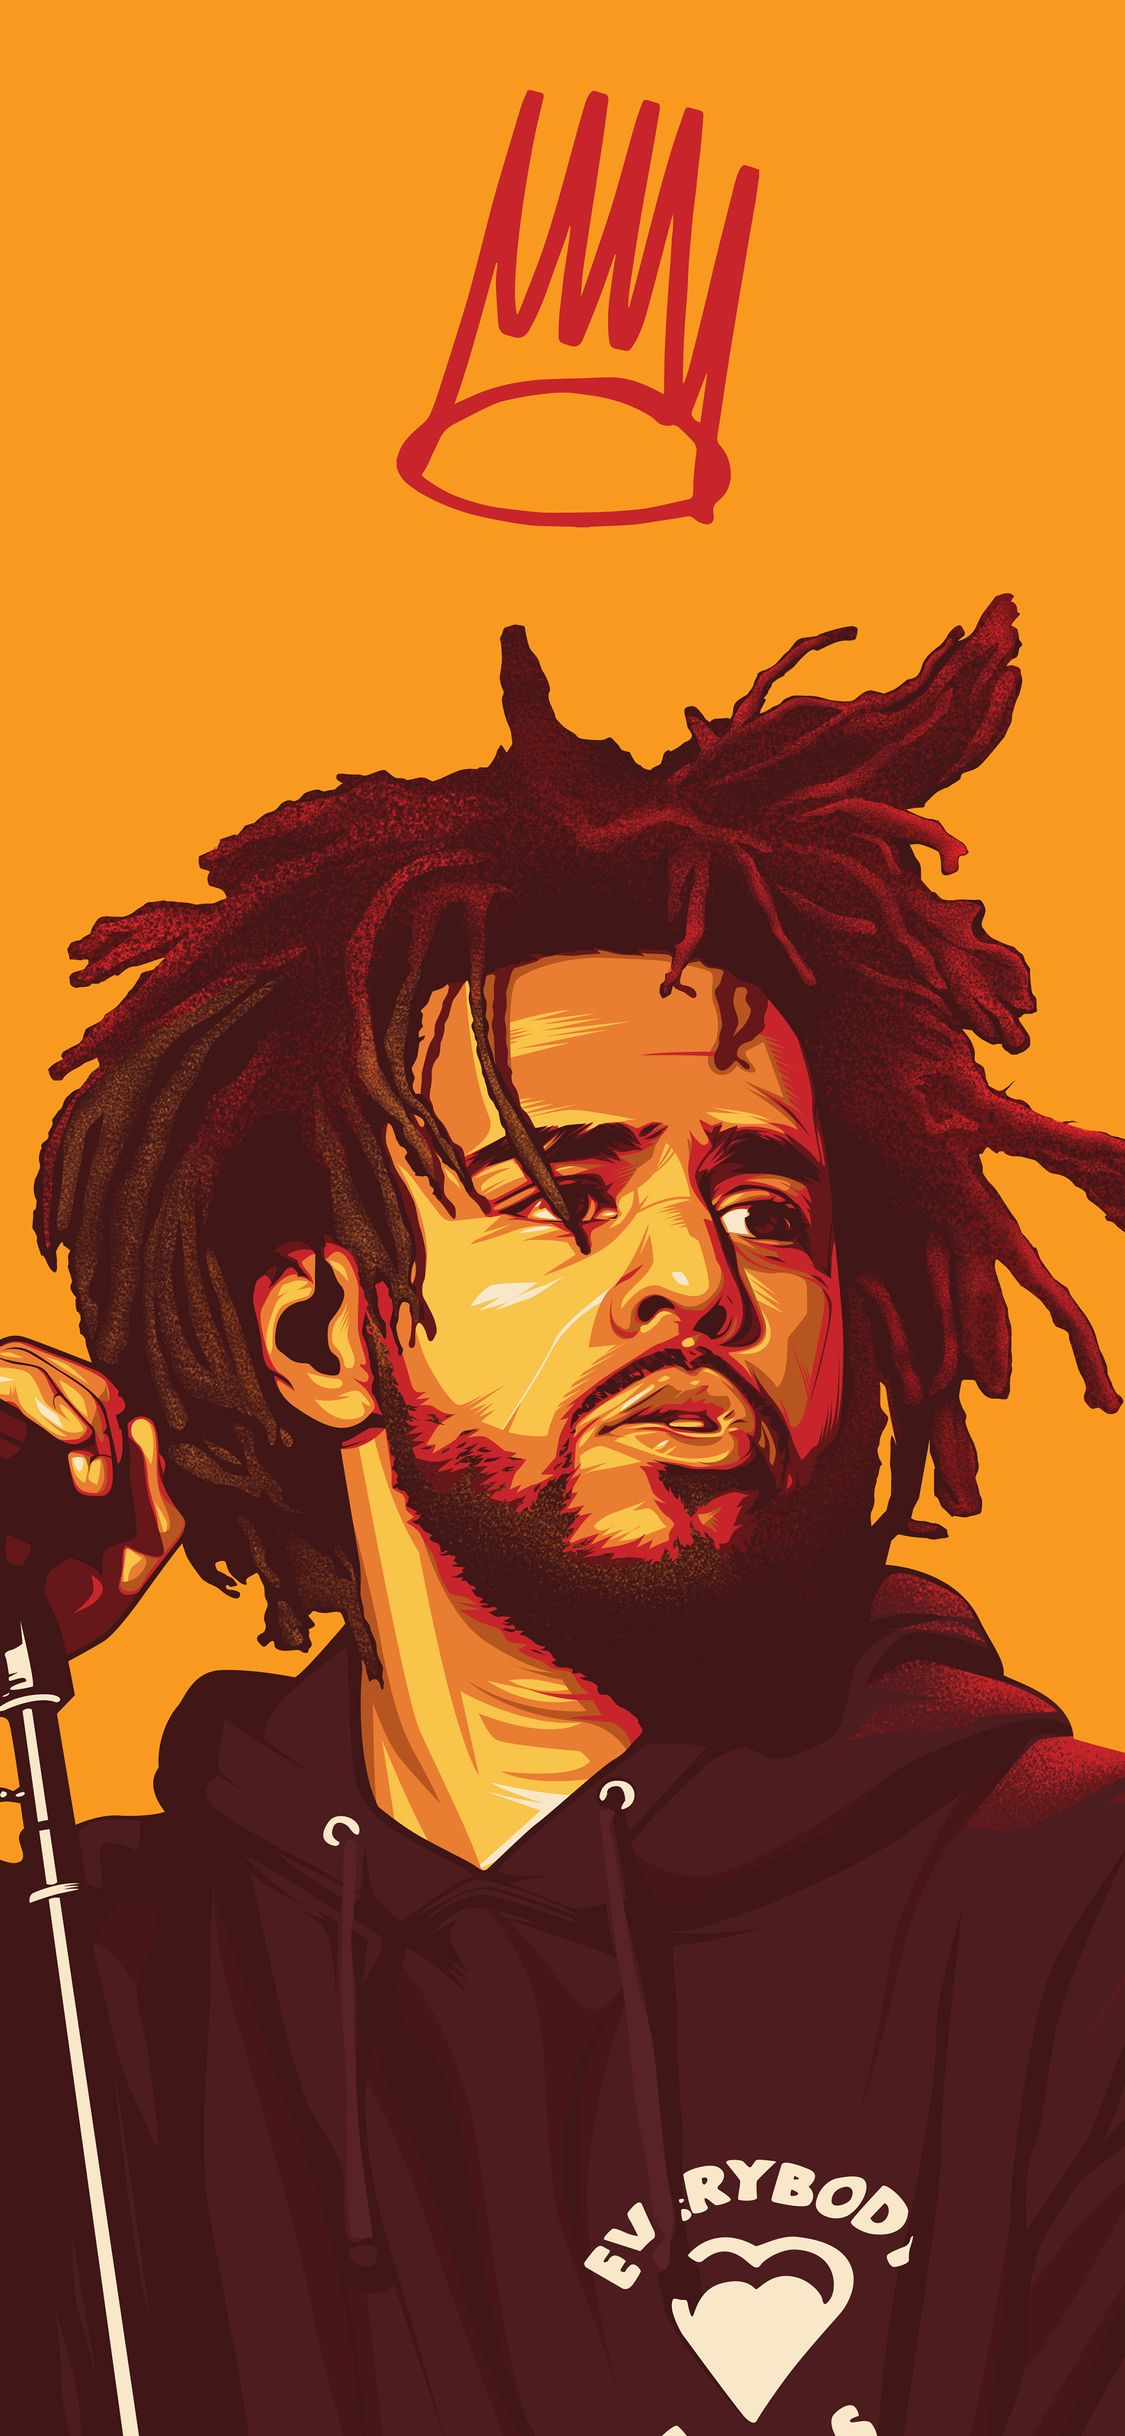 12 Awesome J Cole Iphone Wallpaper Hd J Cole J Cole Iphone Wallpaper J Cole Art